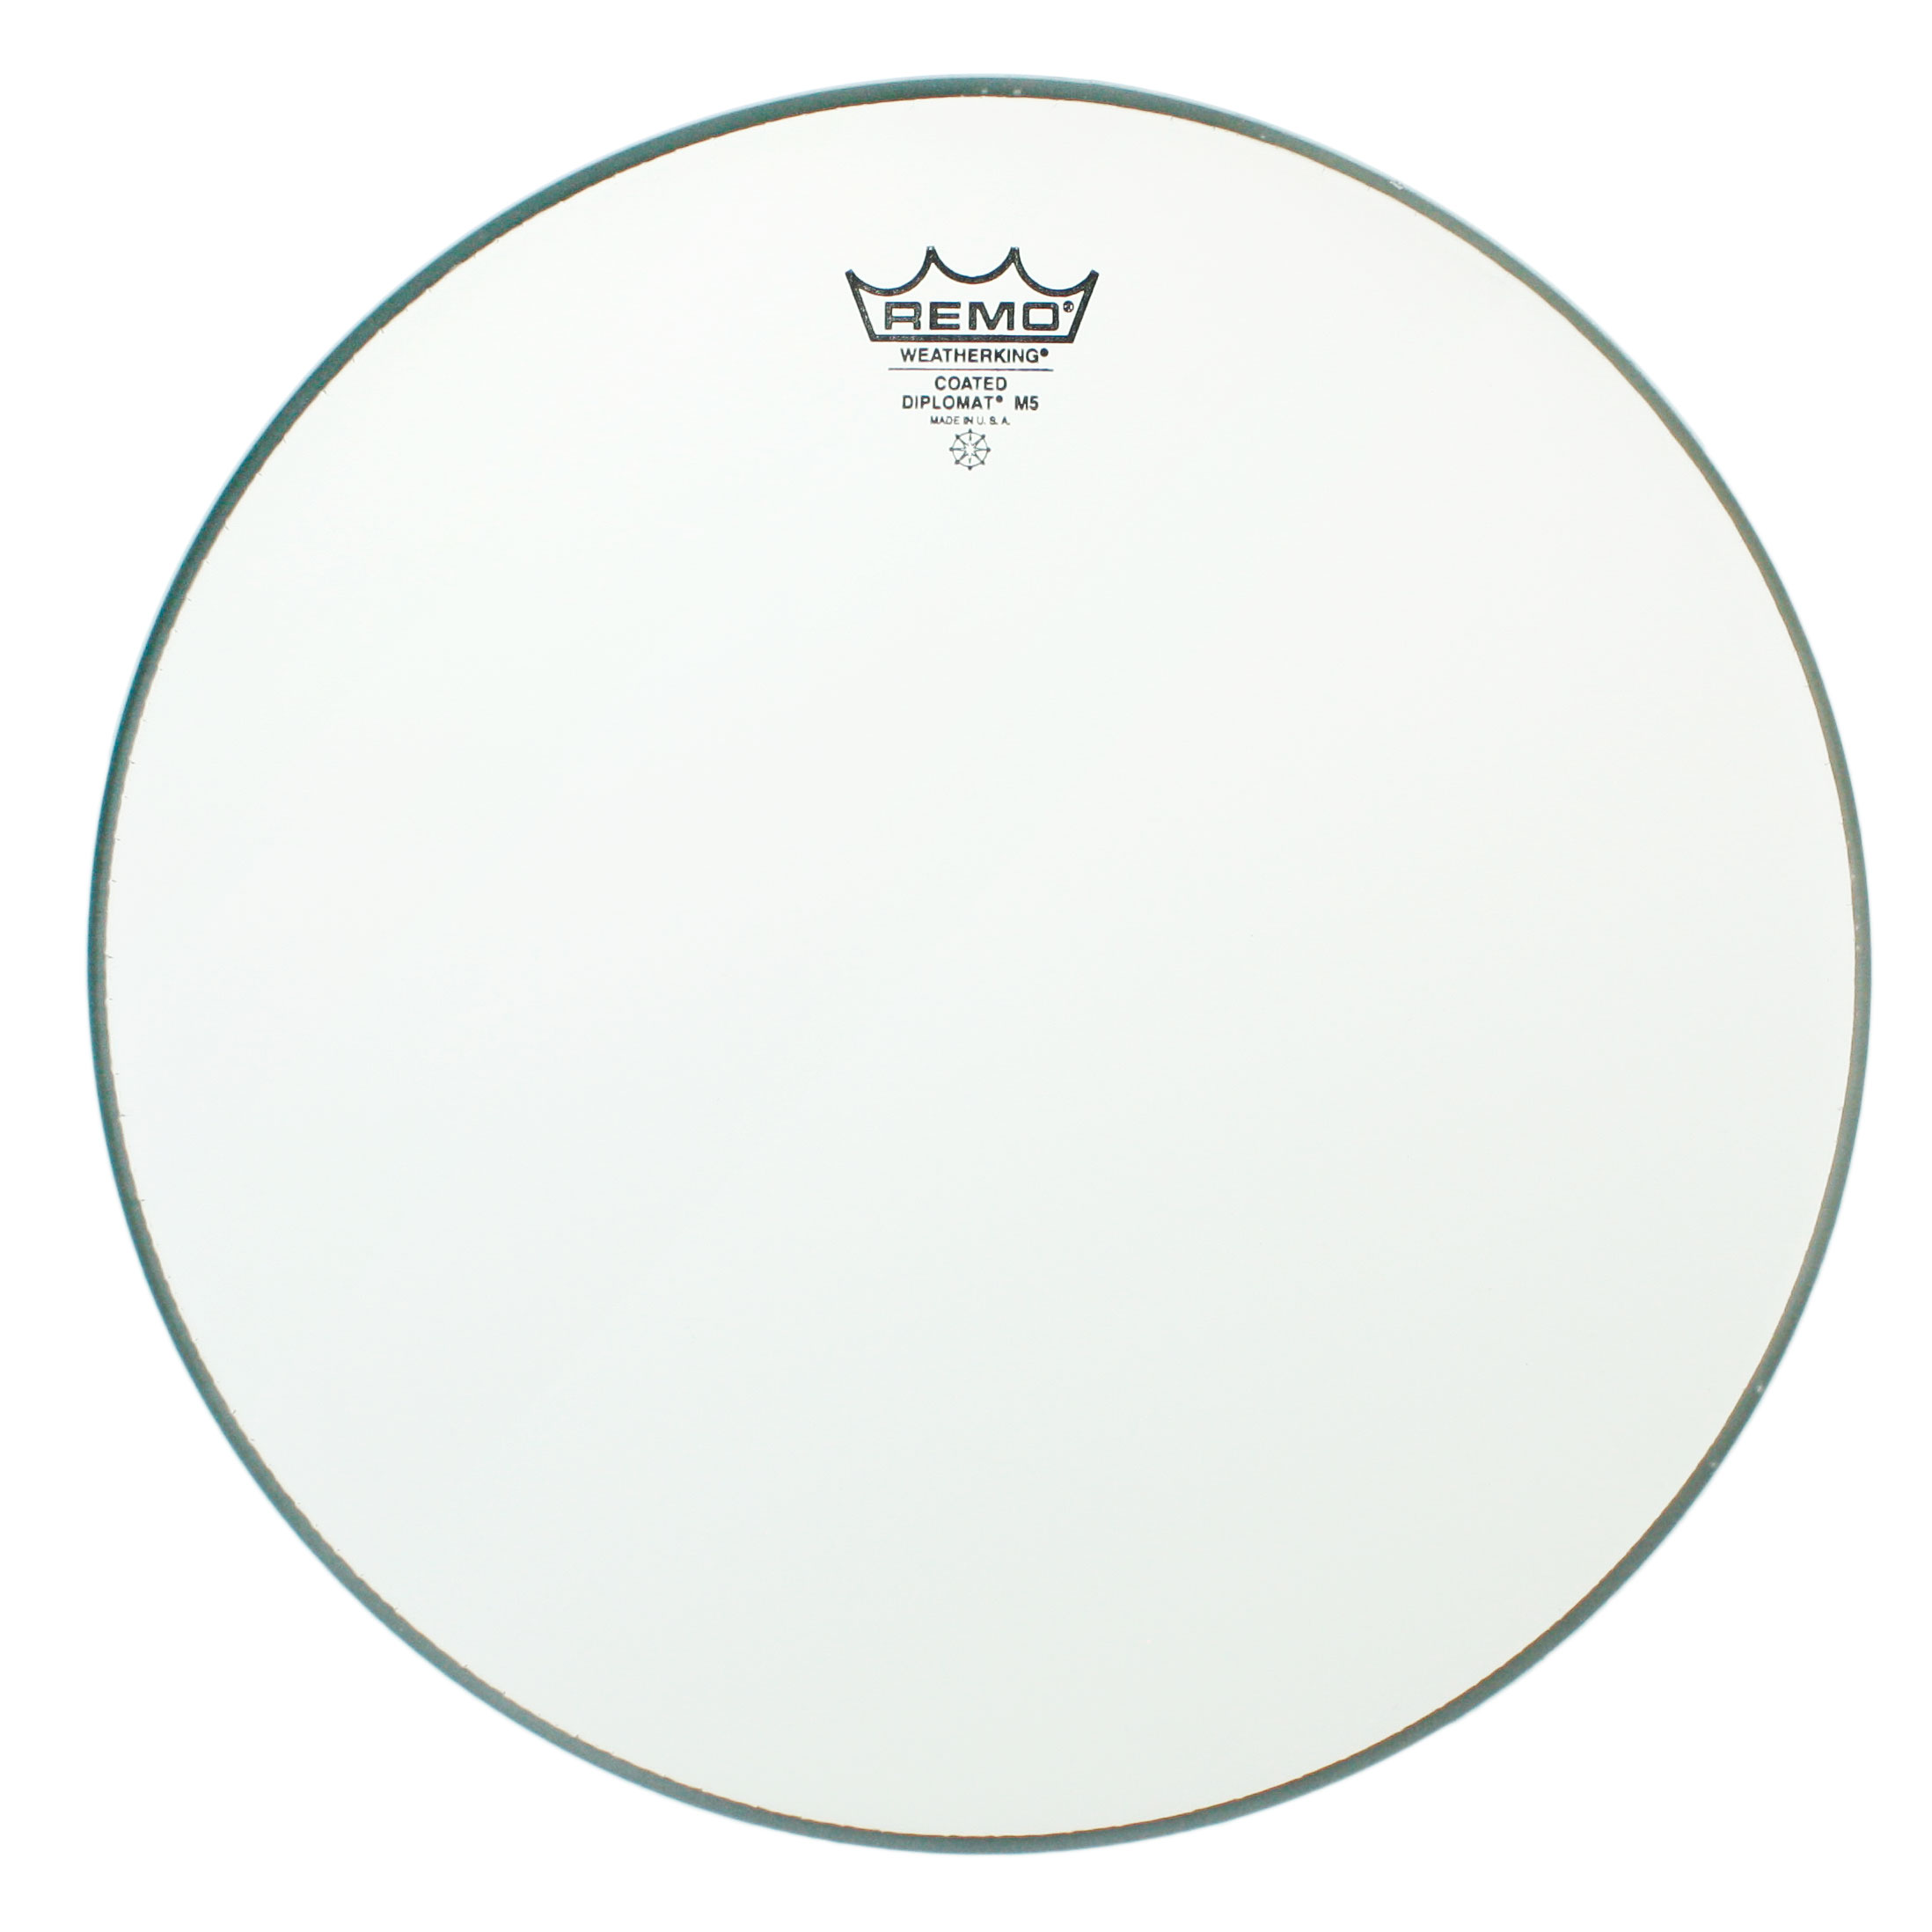 """Remo 14"""" Coated M5 Diplomat Concert Snare Head"""